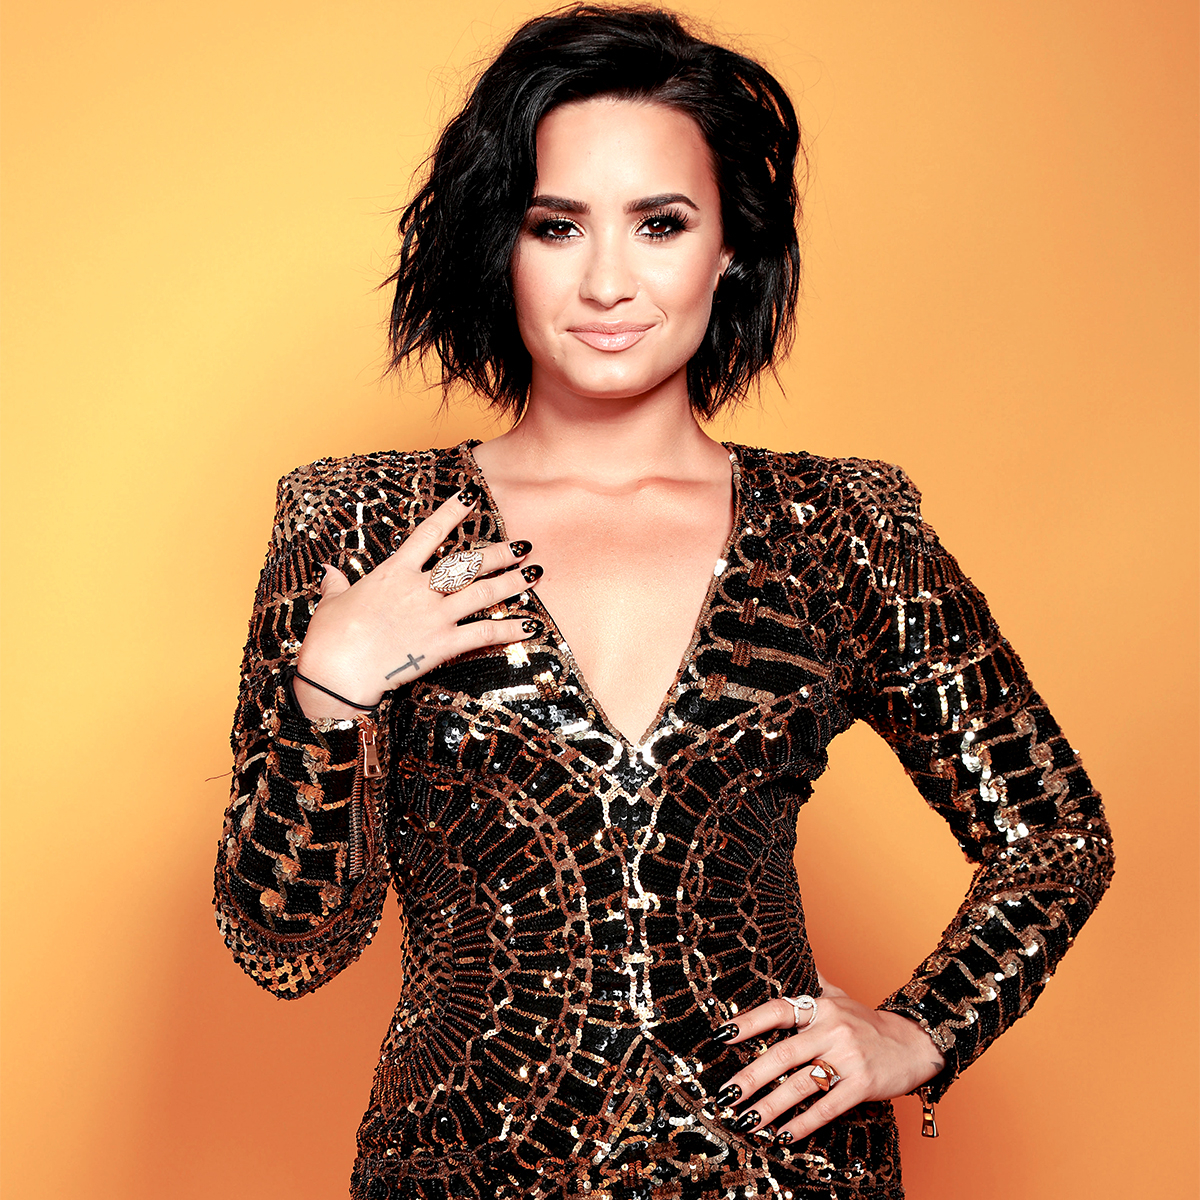 Demi Lovato Brings Her Powerful Voice to 2020 Billboard Music Awards After Max Ehrich Breakup